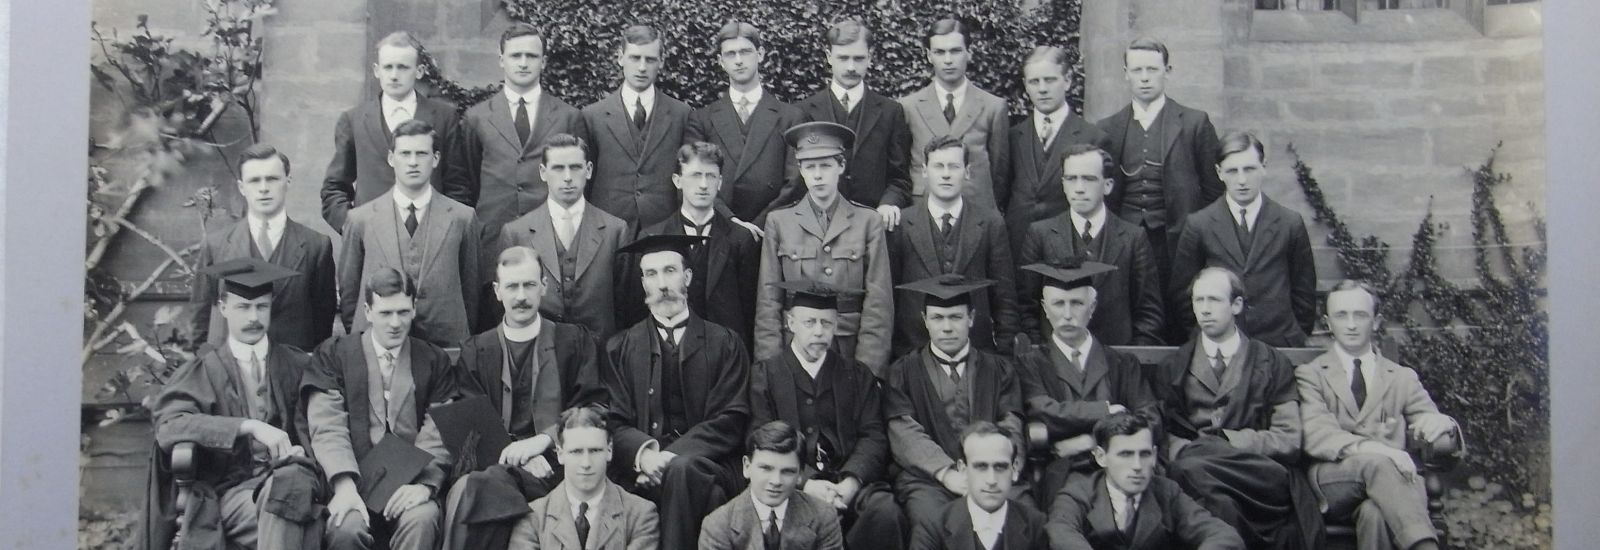 Mansfield College Group, 1915